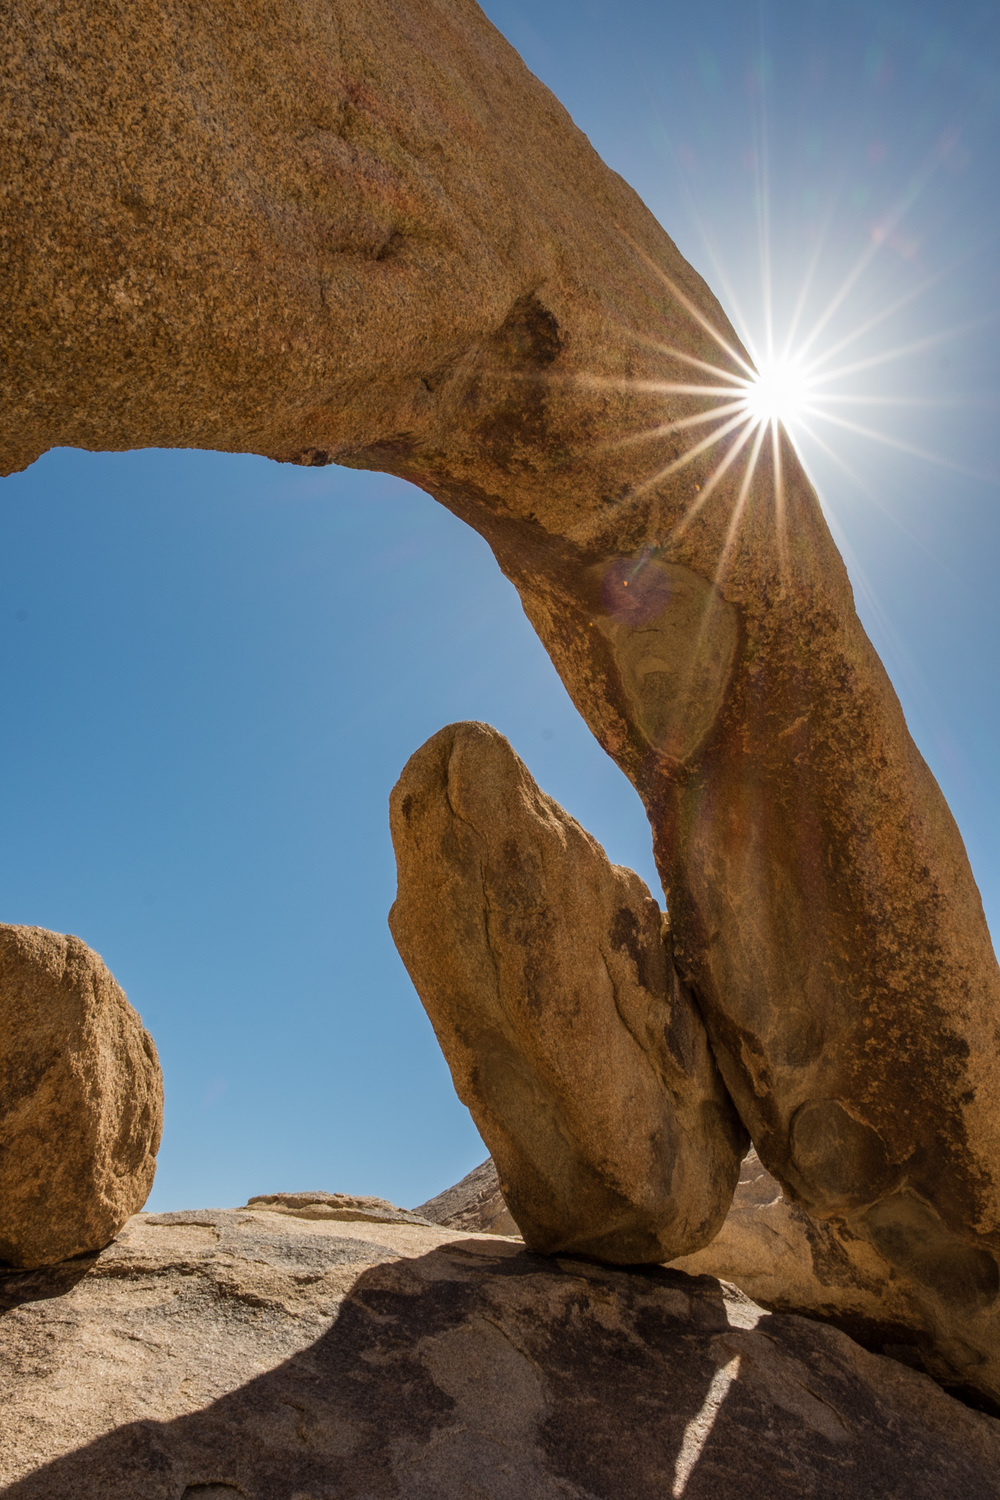 Arch Rock at Joshua Tree...another really fun rock to photograph.